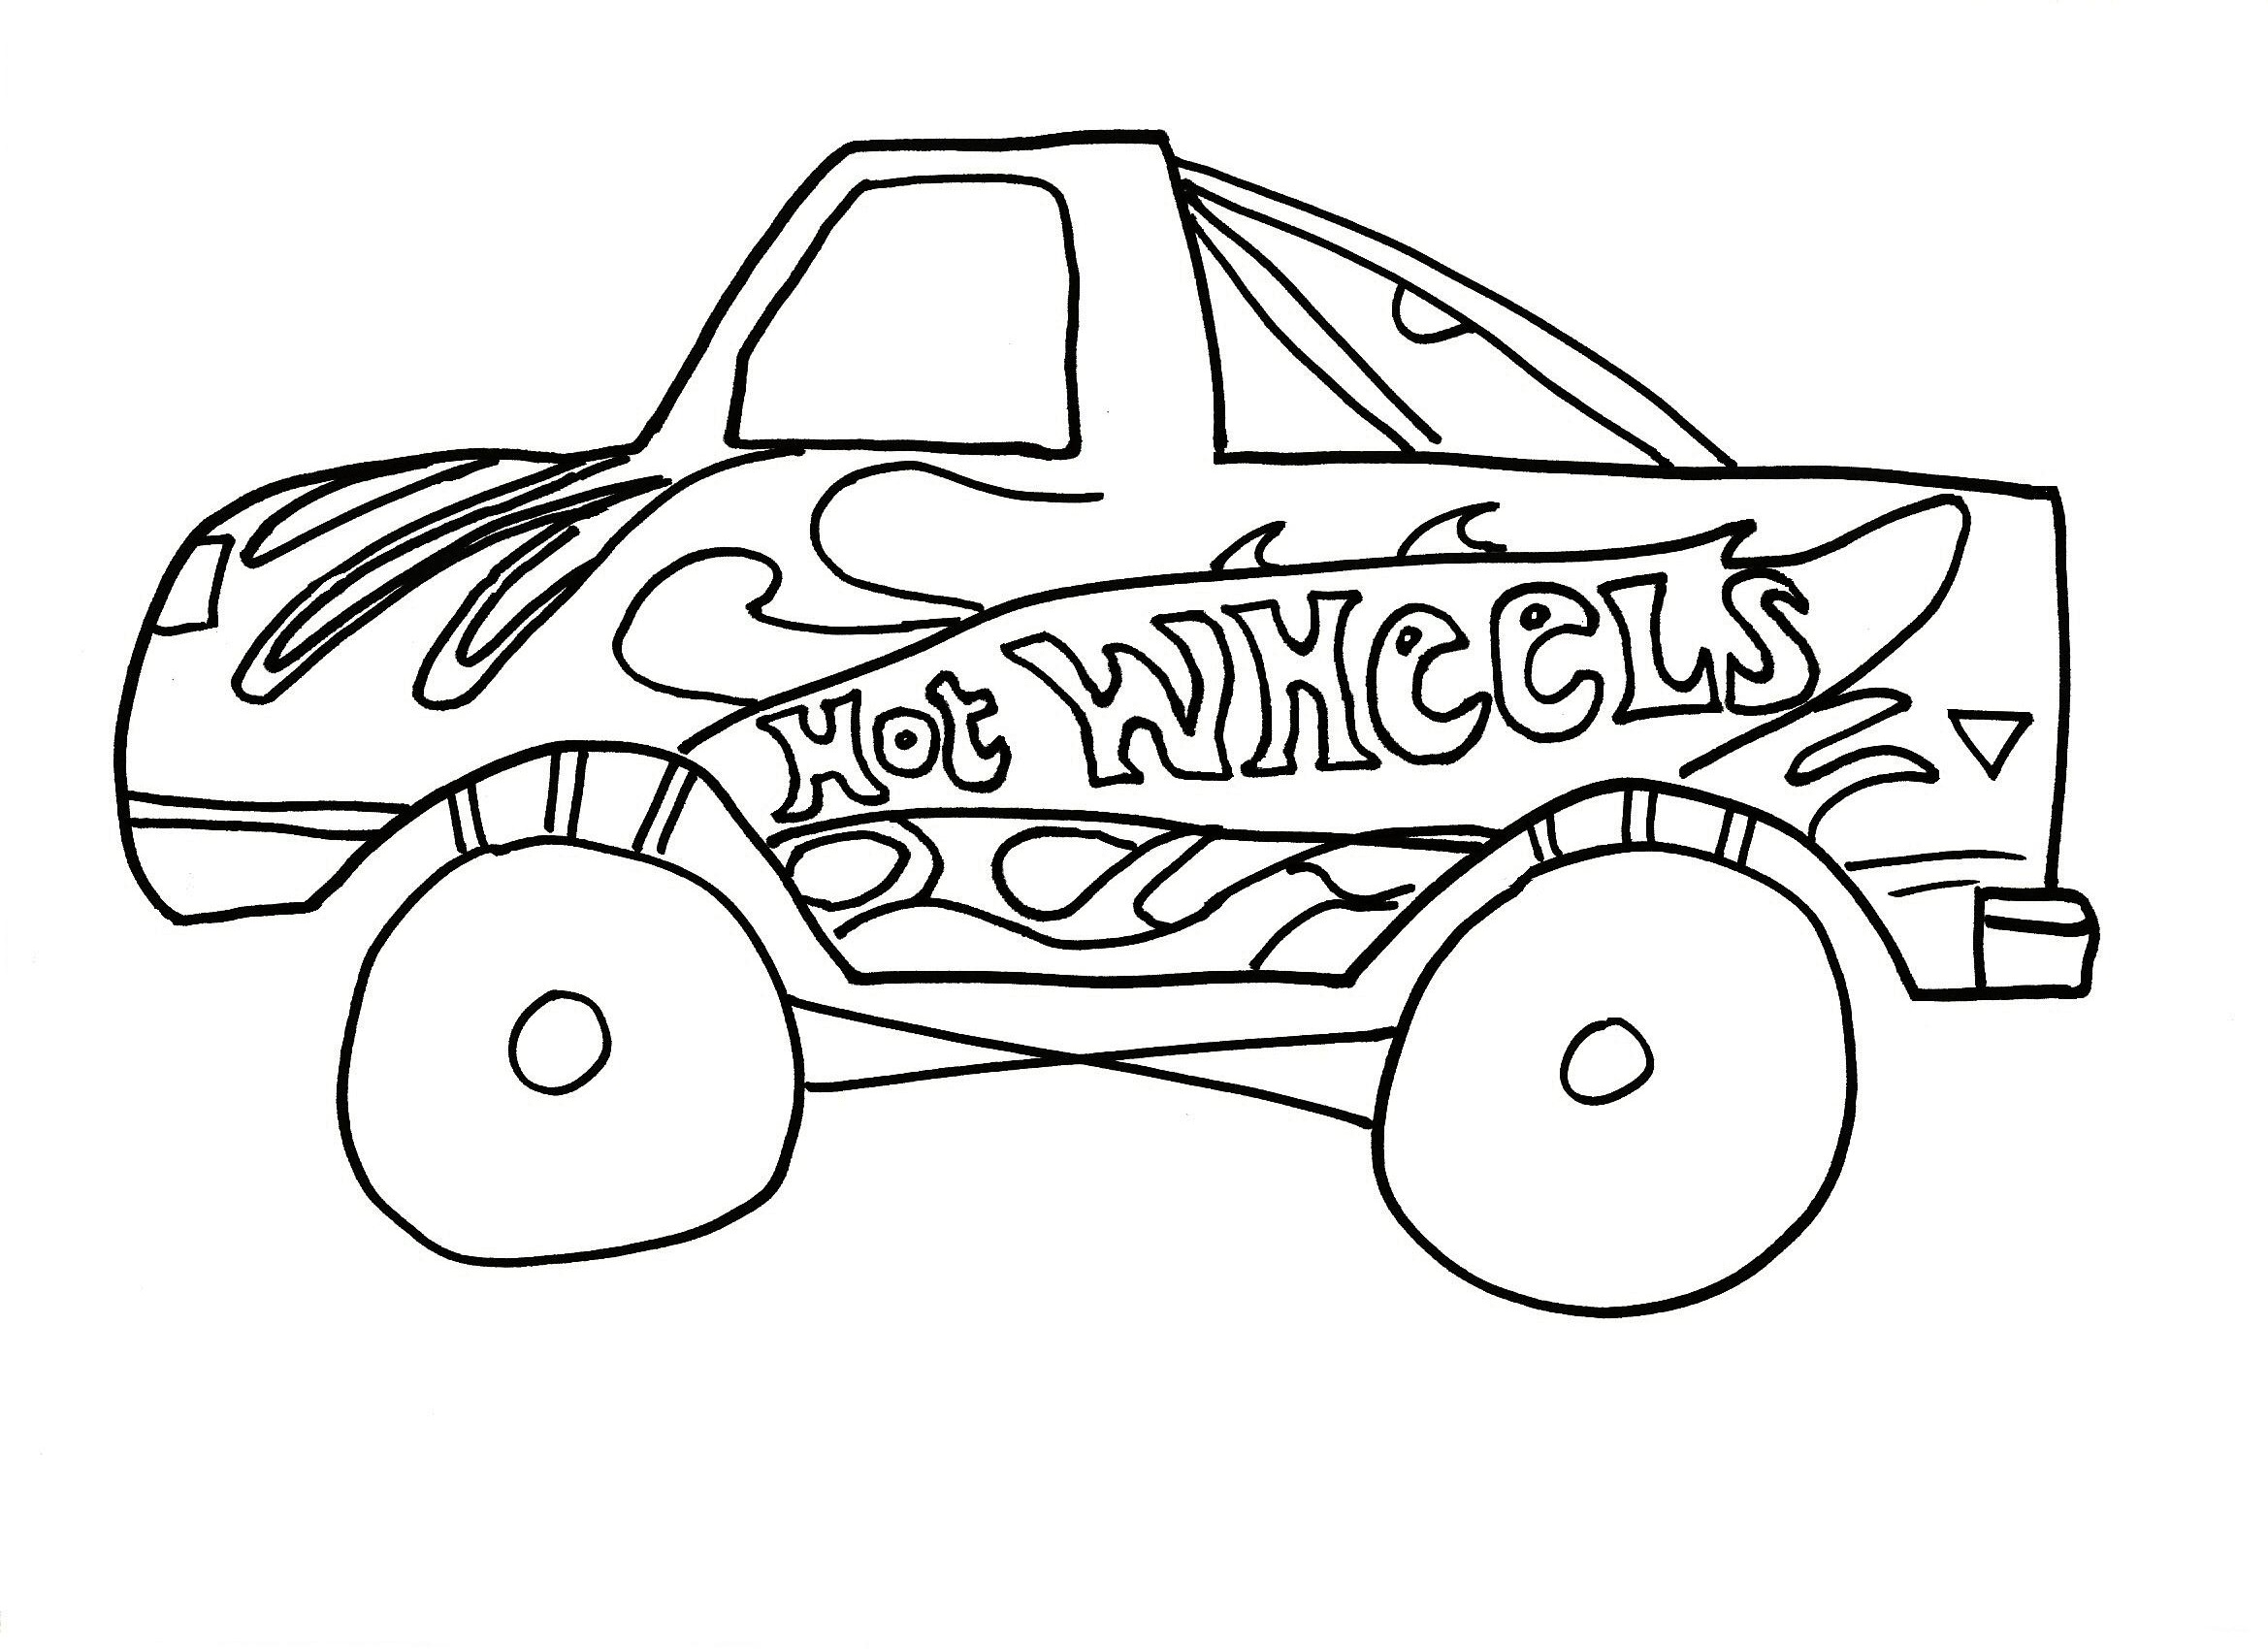 Free coloring pages for young adults - Hot Wheels Coloring Pages Print